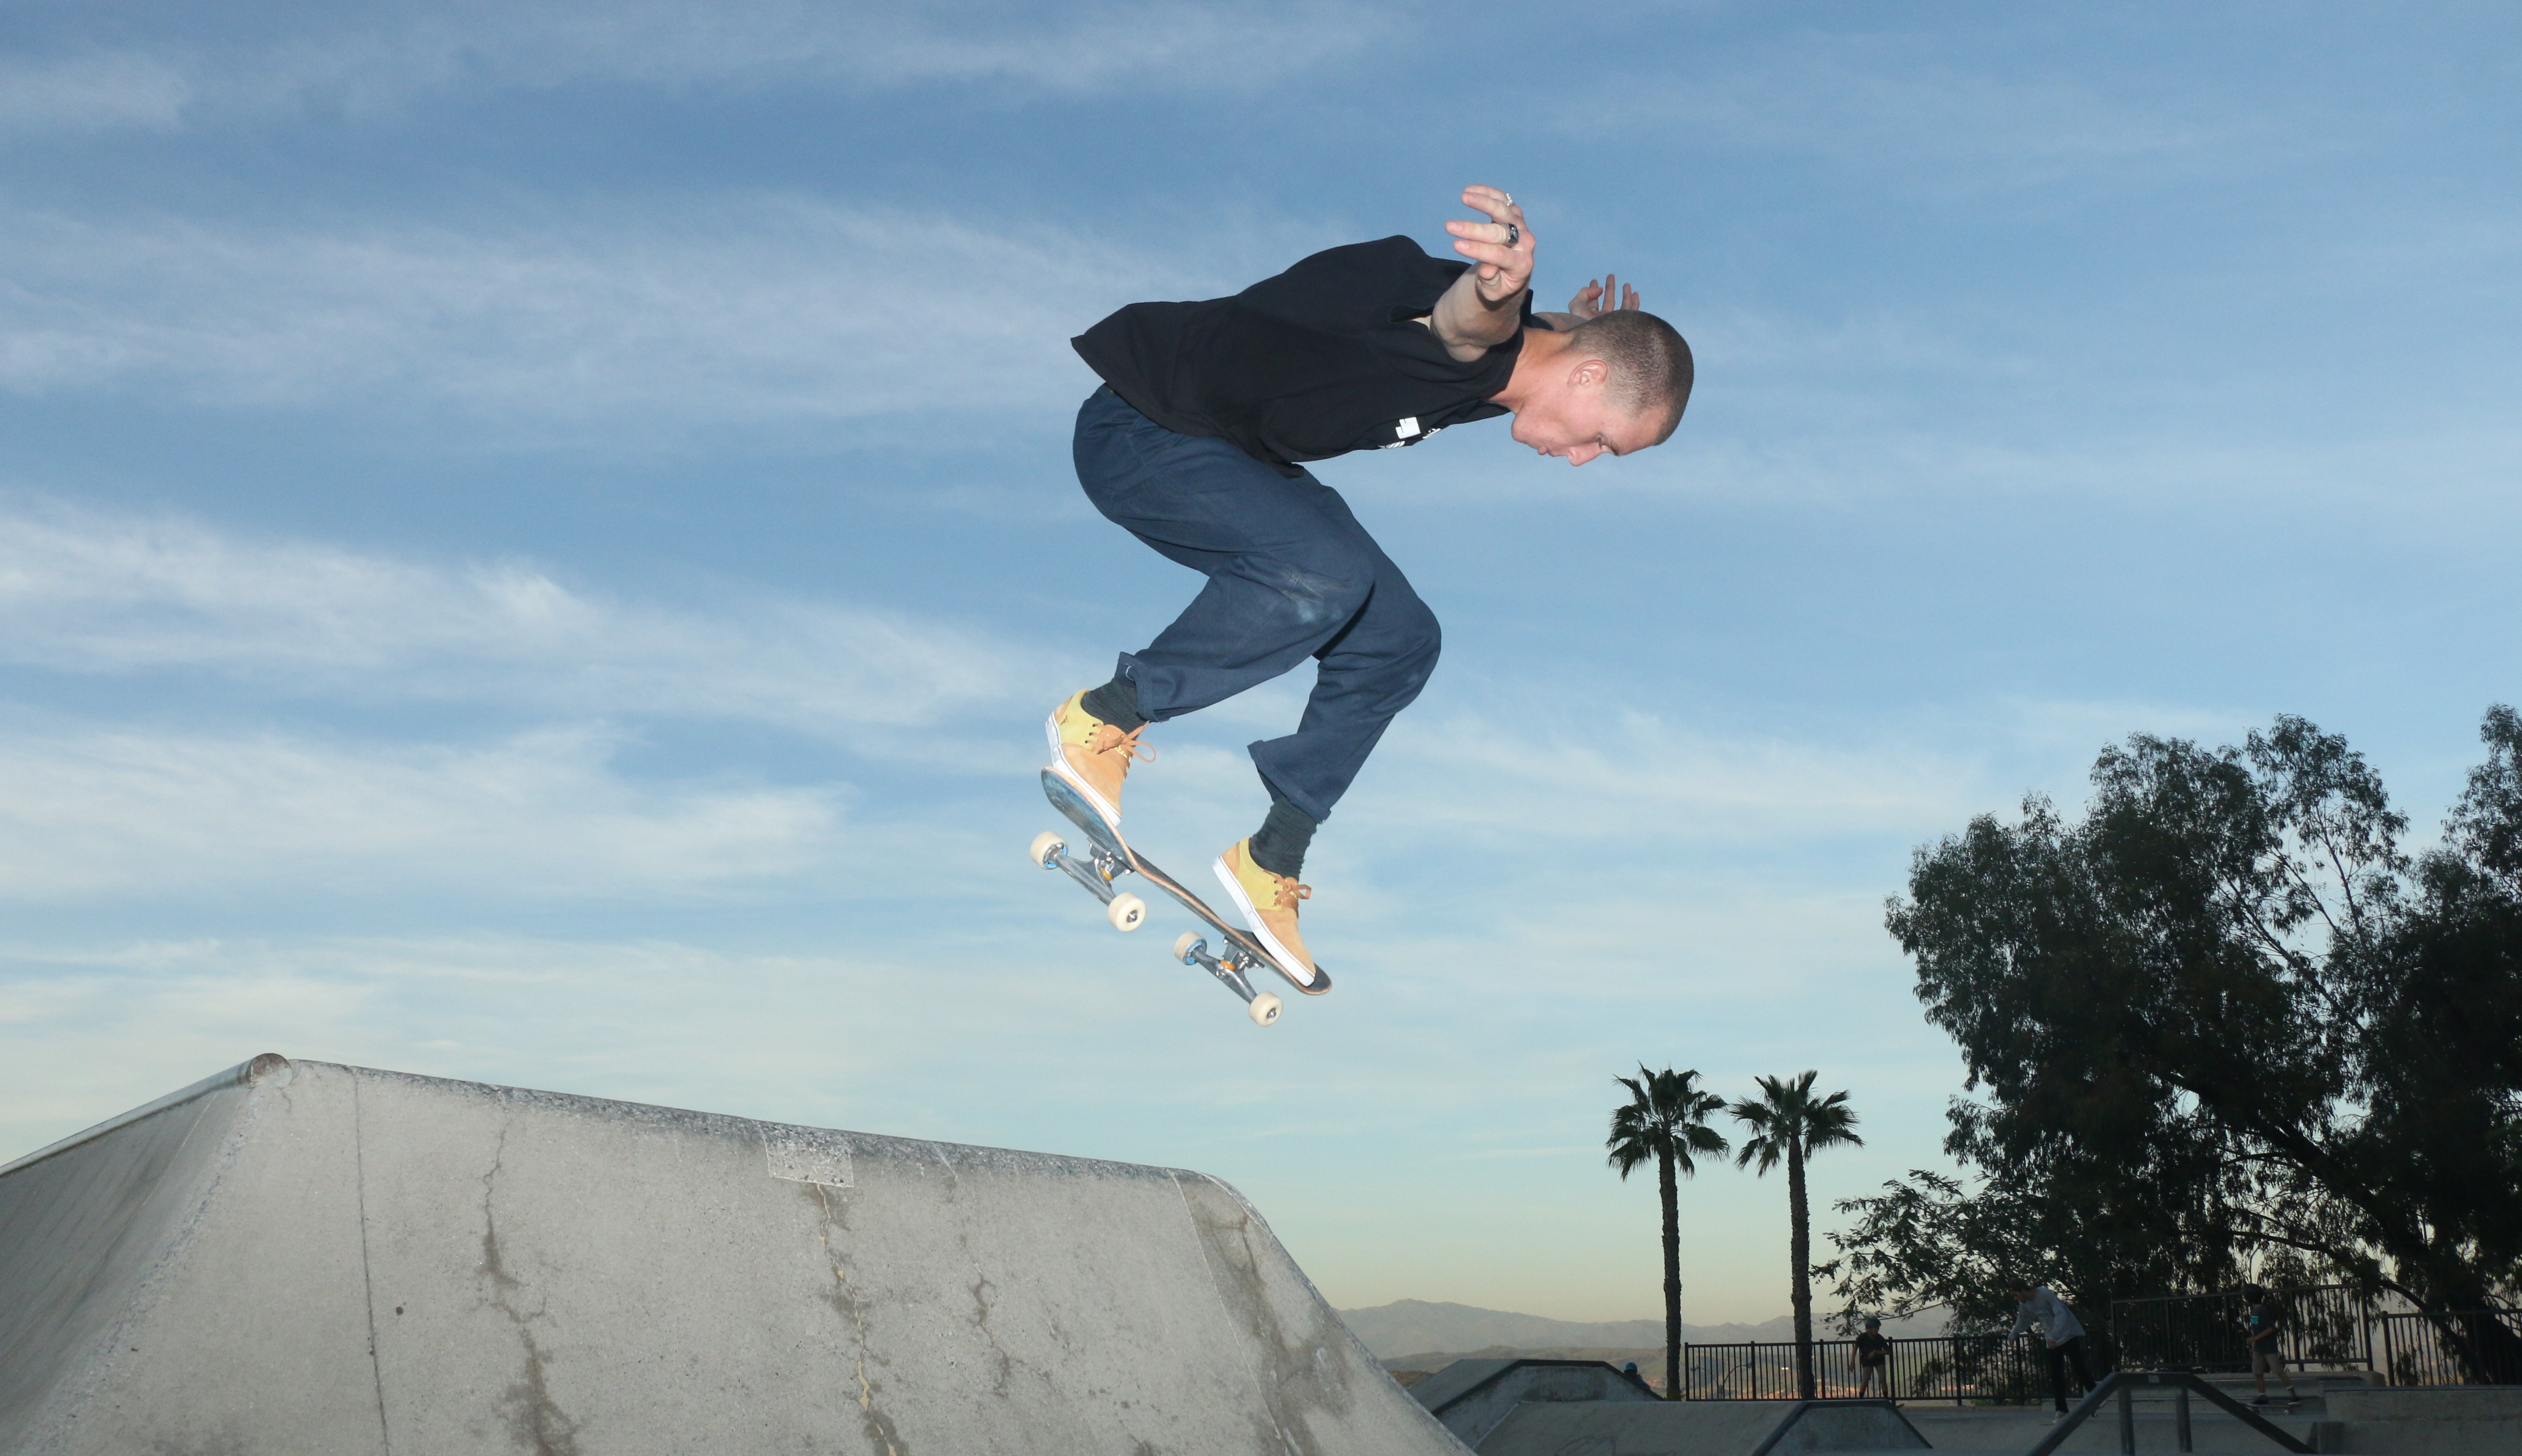 Adler Deardorff skateboards on Feb. 22 at the Ralphs Skate Court in San Clemente. Though in its infancy, the San Clemente Skate Park Coalition is looking for ways to expand the skatepark and install overhead lighting. Photo: Eric Heinz